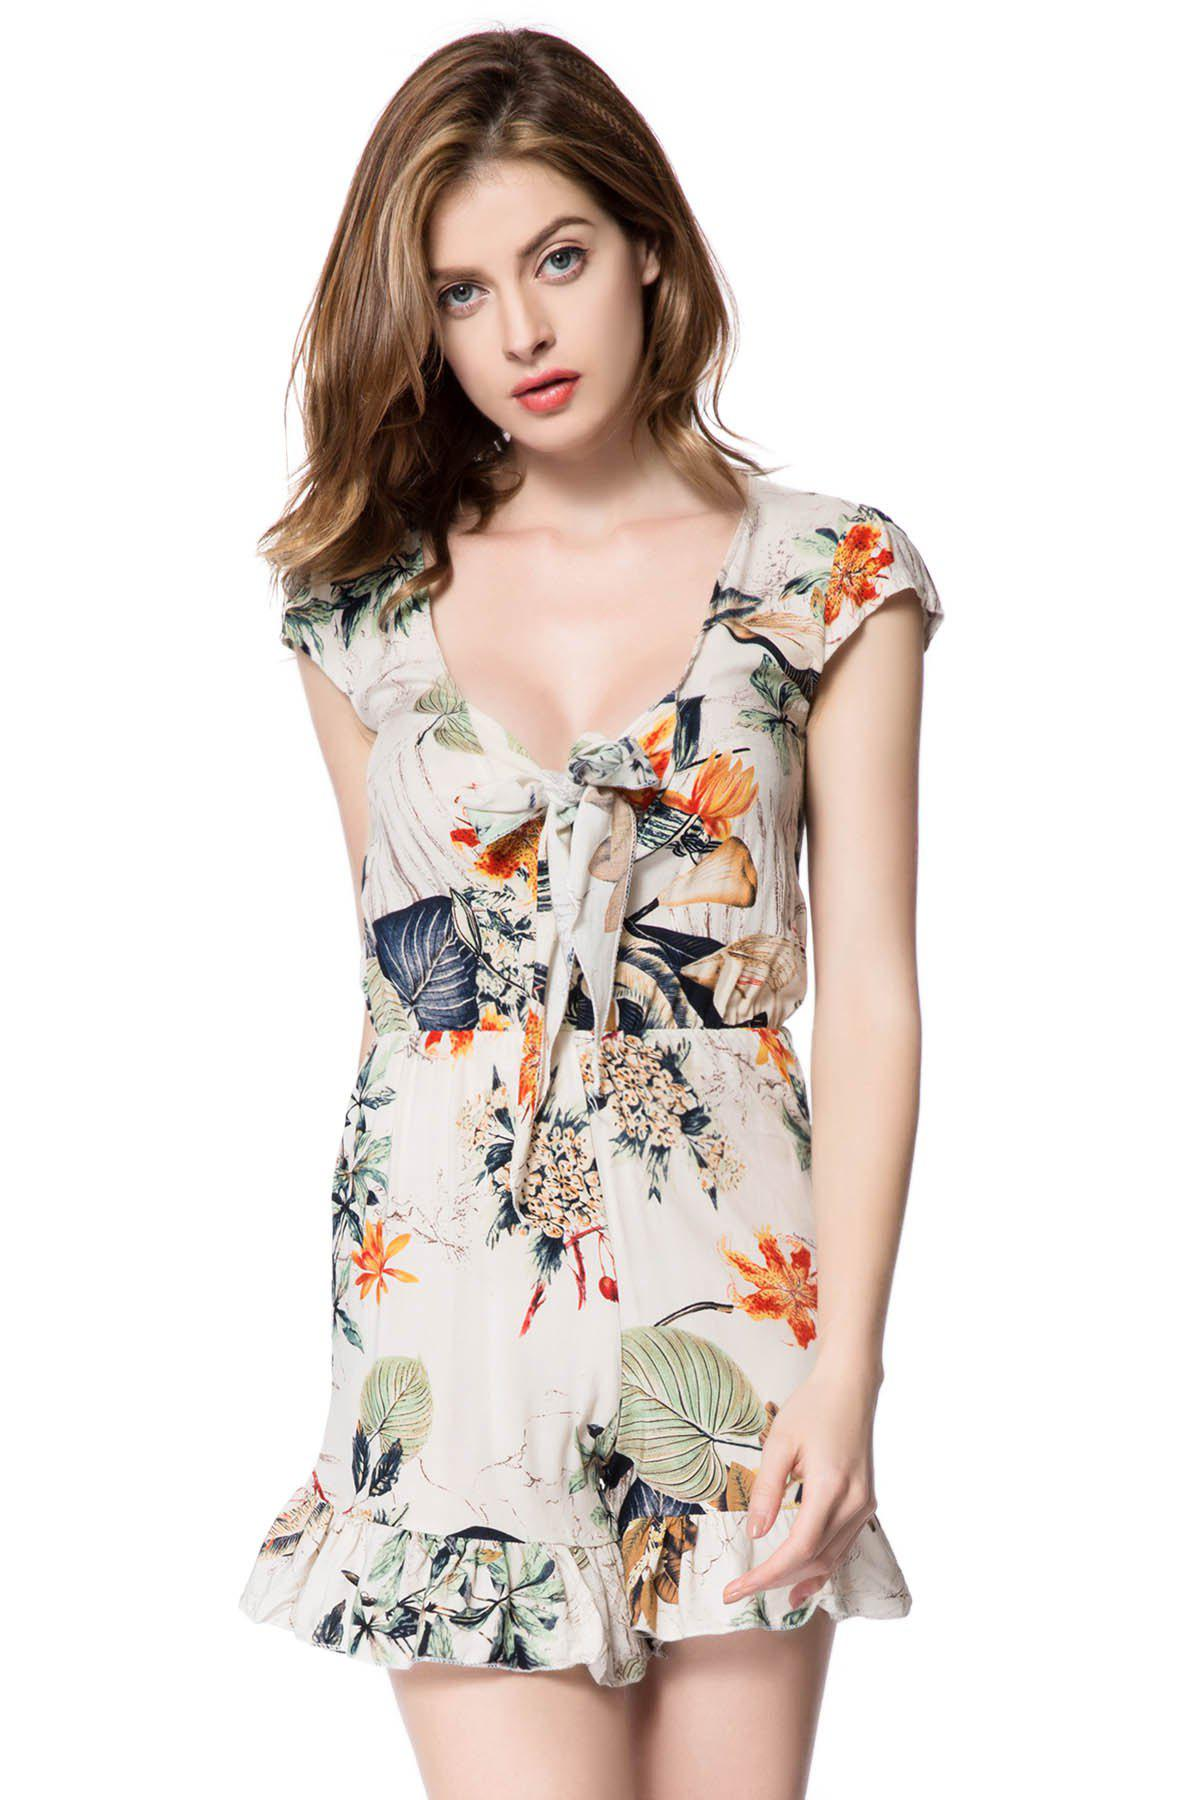 Chic Plunging Neckline Flounced Floral Romper